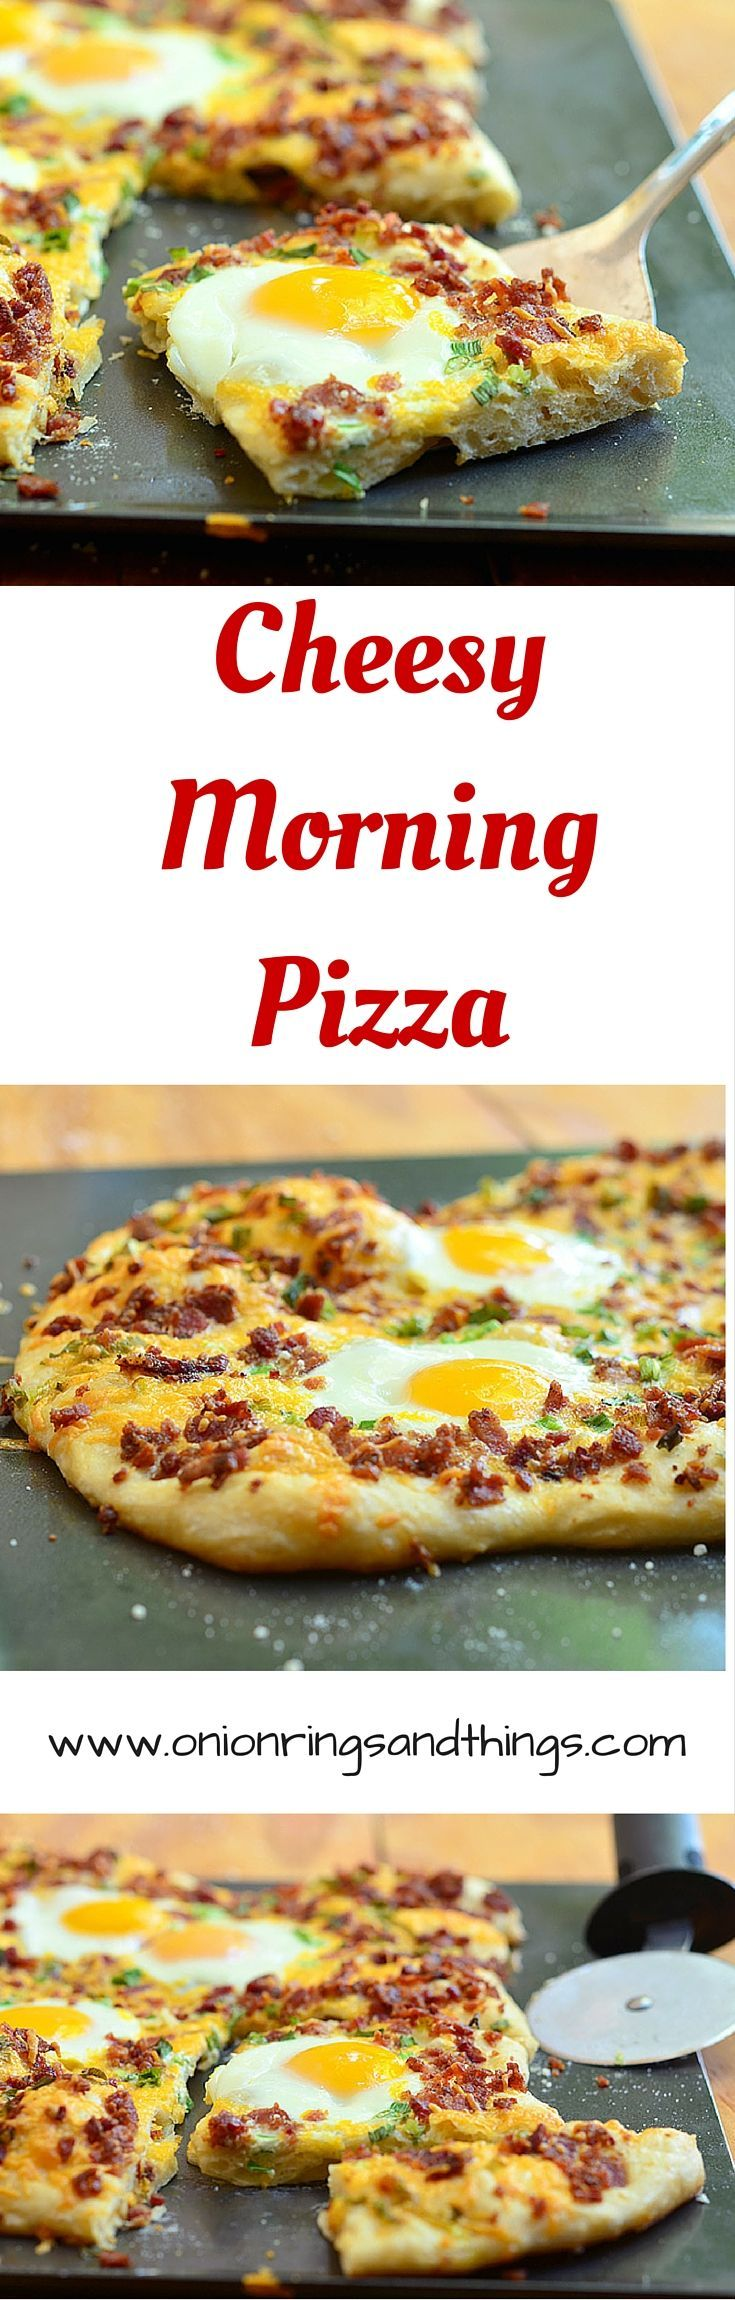 Cheesy Morning Pizza is a breakfast pizza topped with crumbled bacon, sharp cheddar cheese and sunny eggs